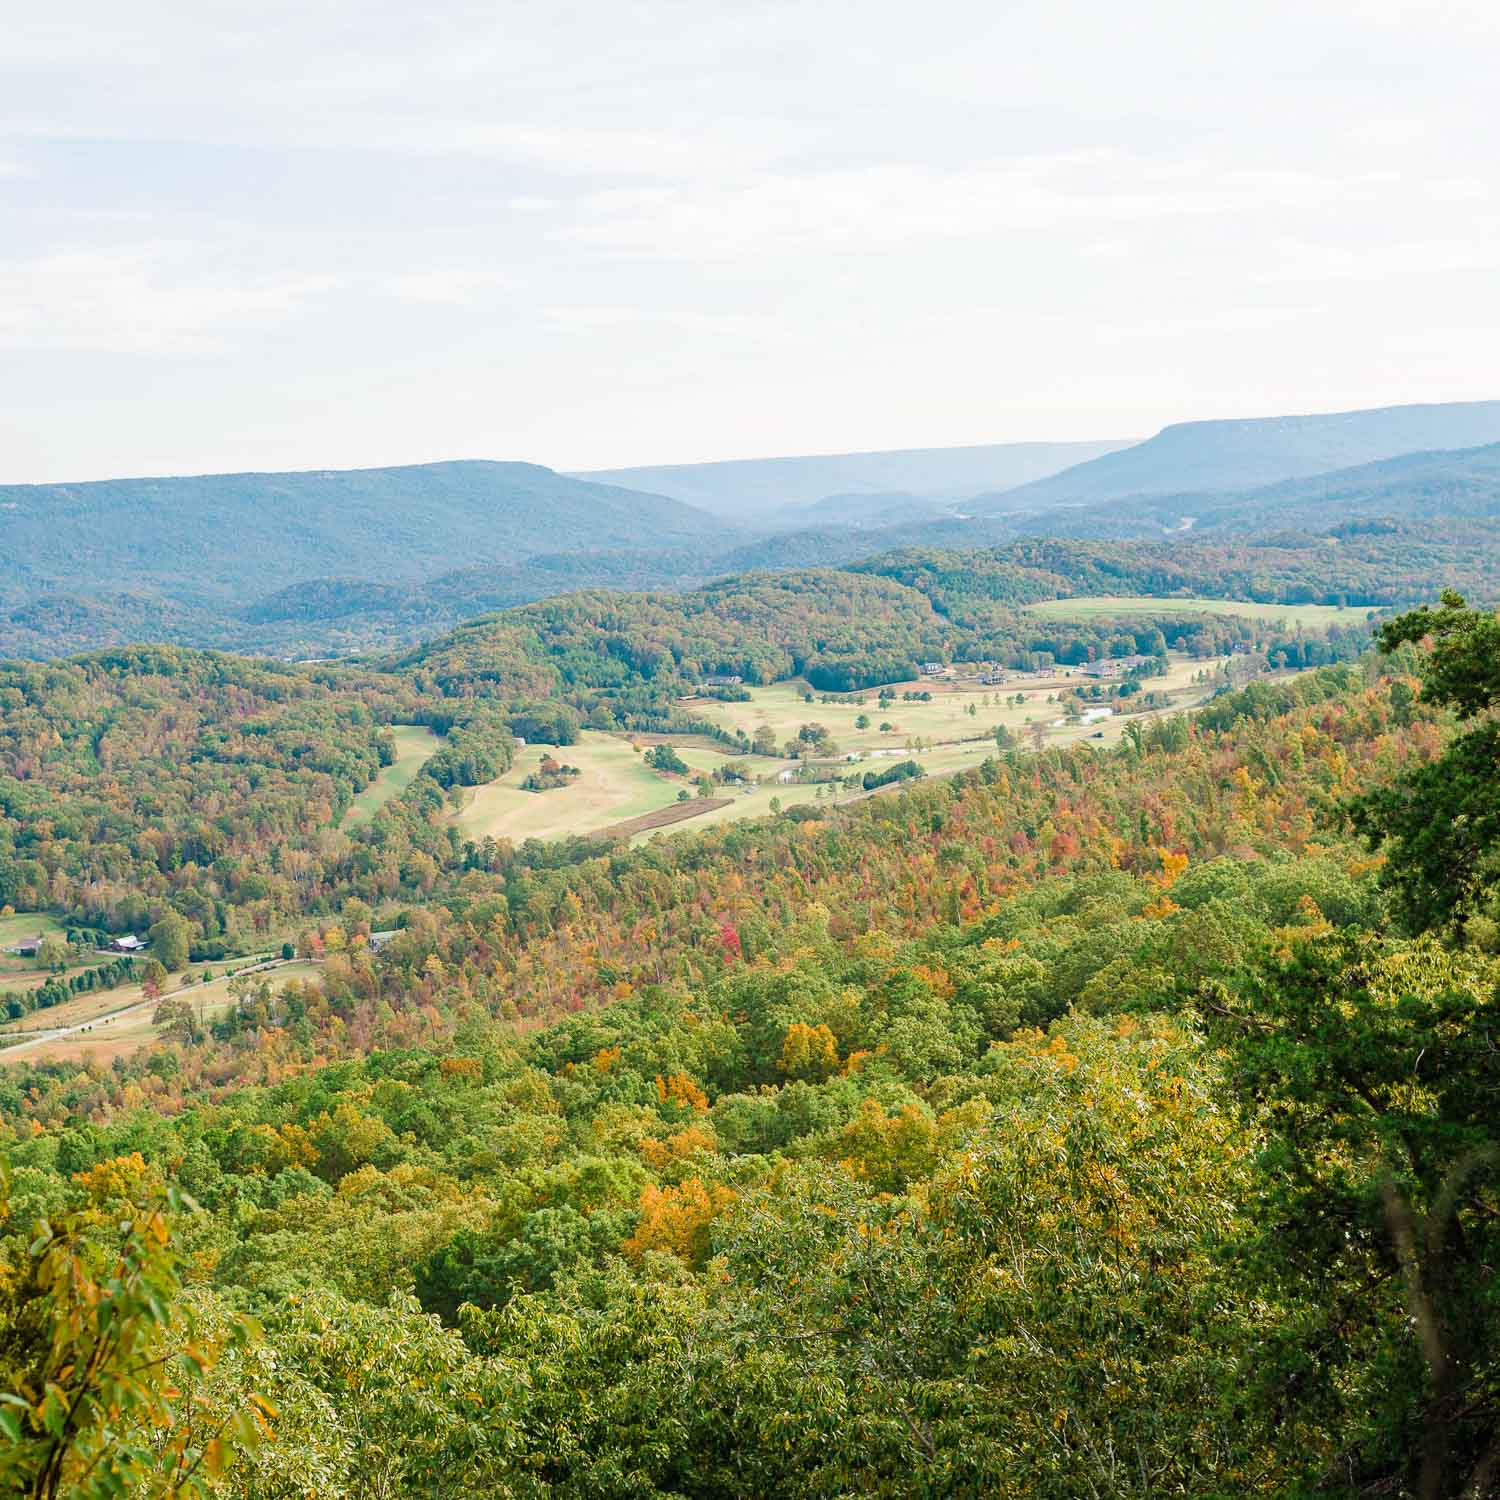 the view overlooking North Ga from Sunrise Farm wedding ceremony site